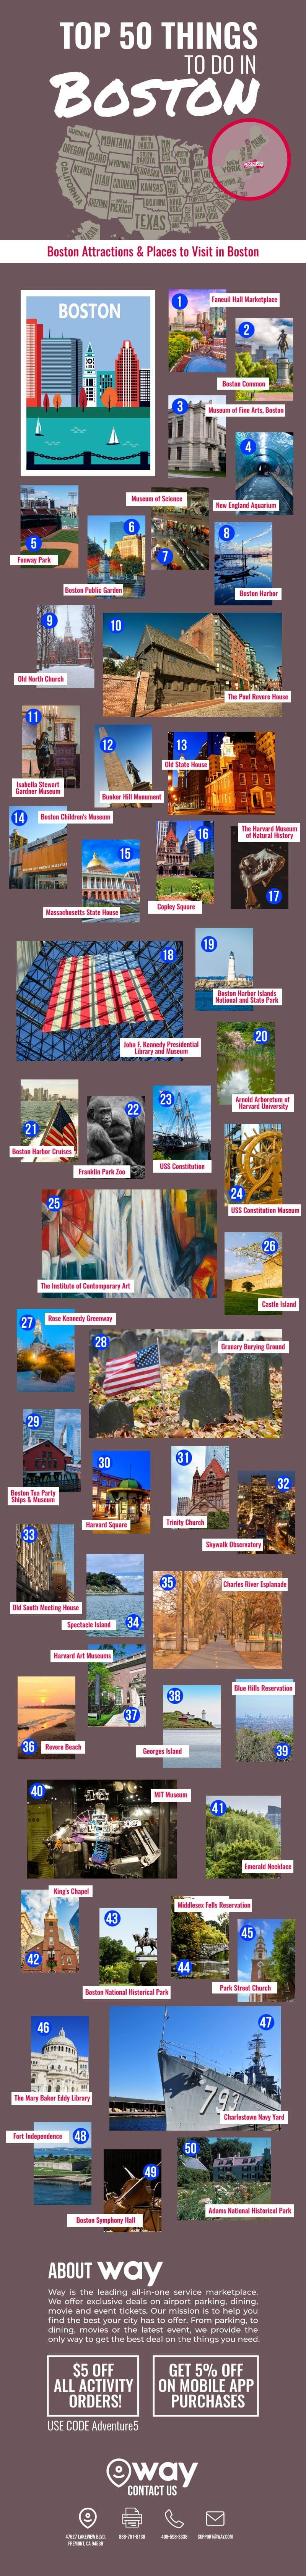 Top-50-Things-to-Do-in-Boston-infographic-plaza